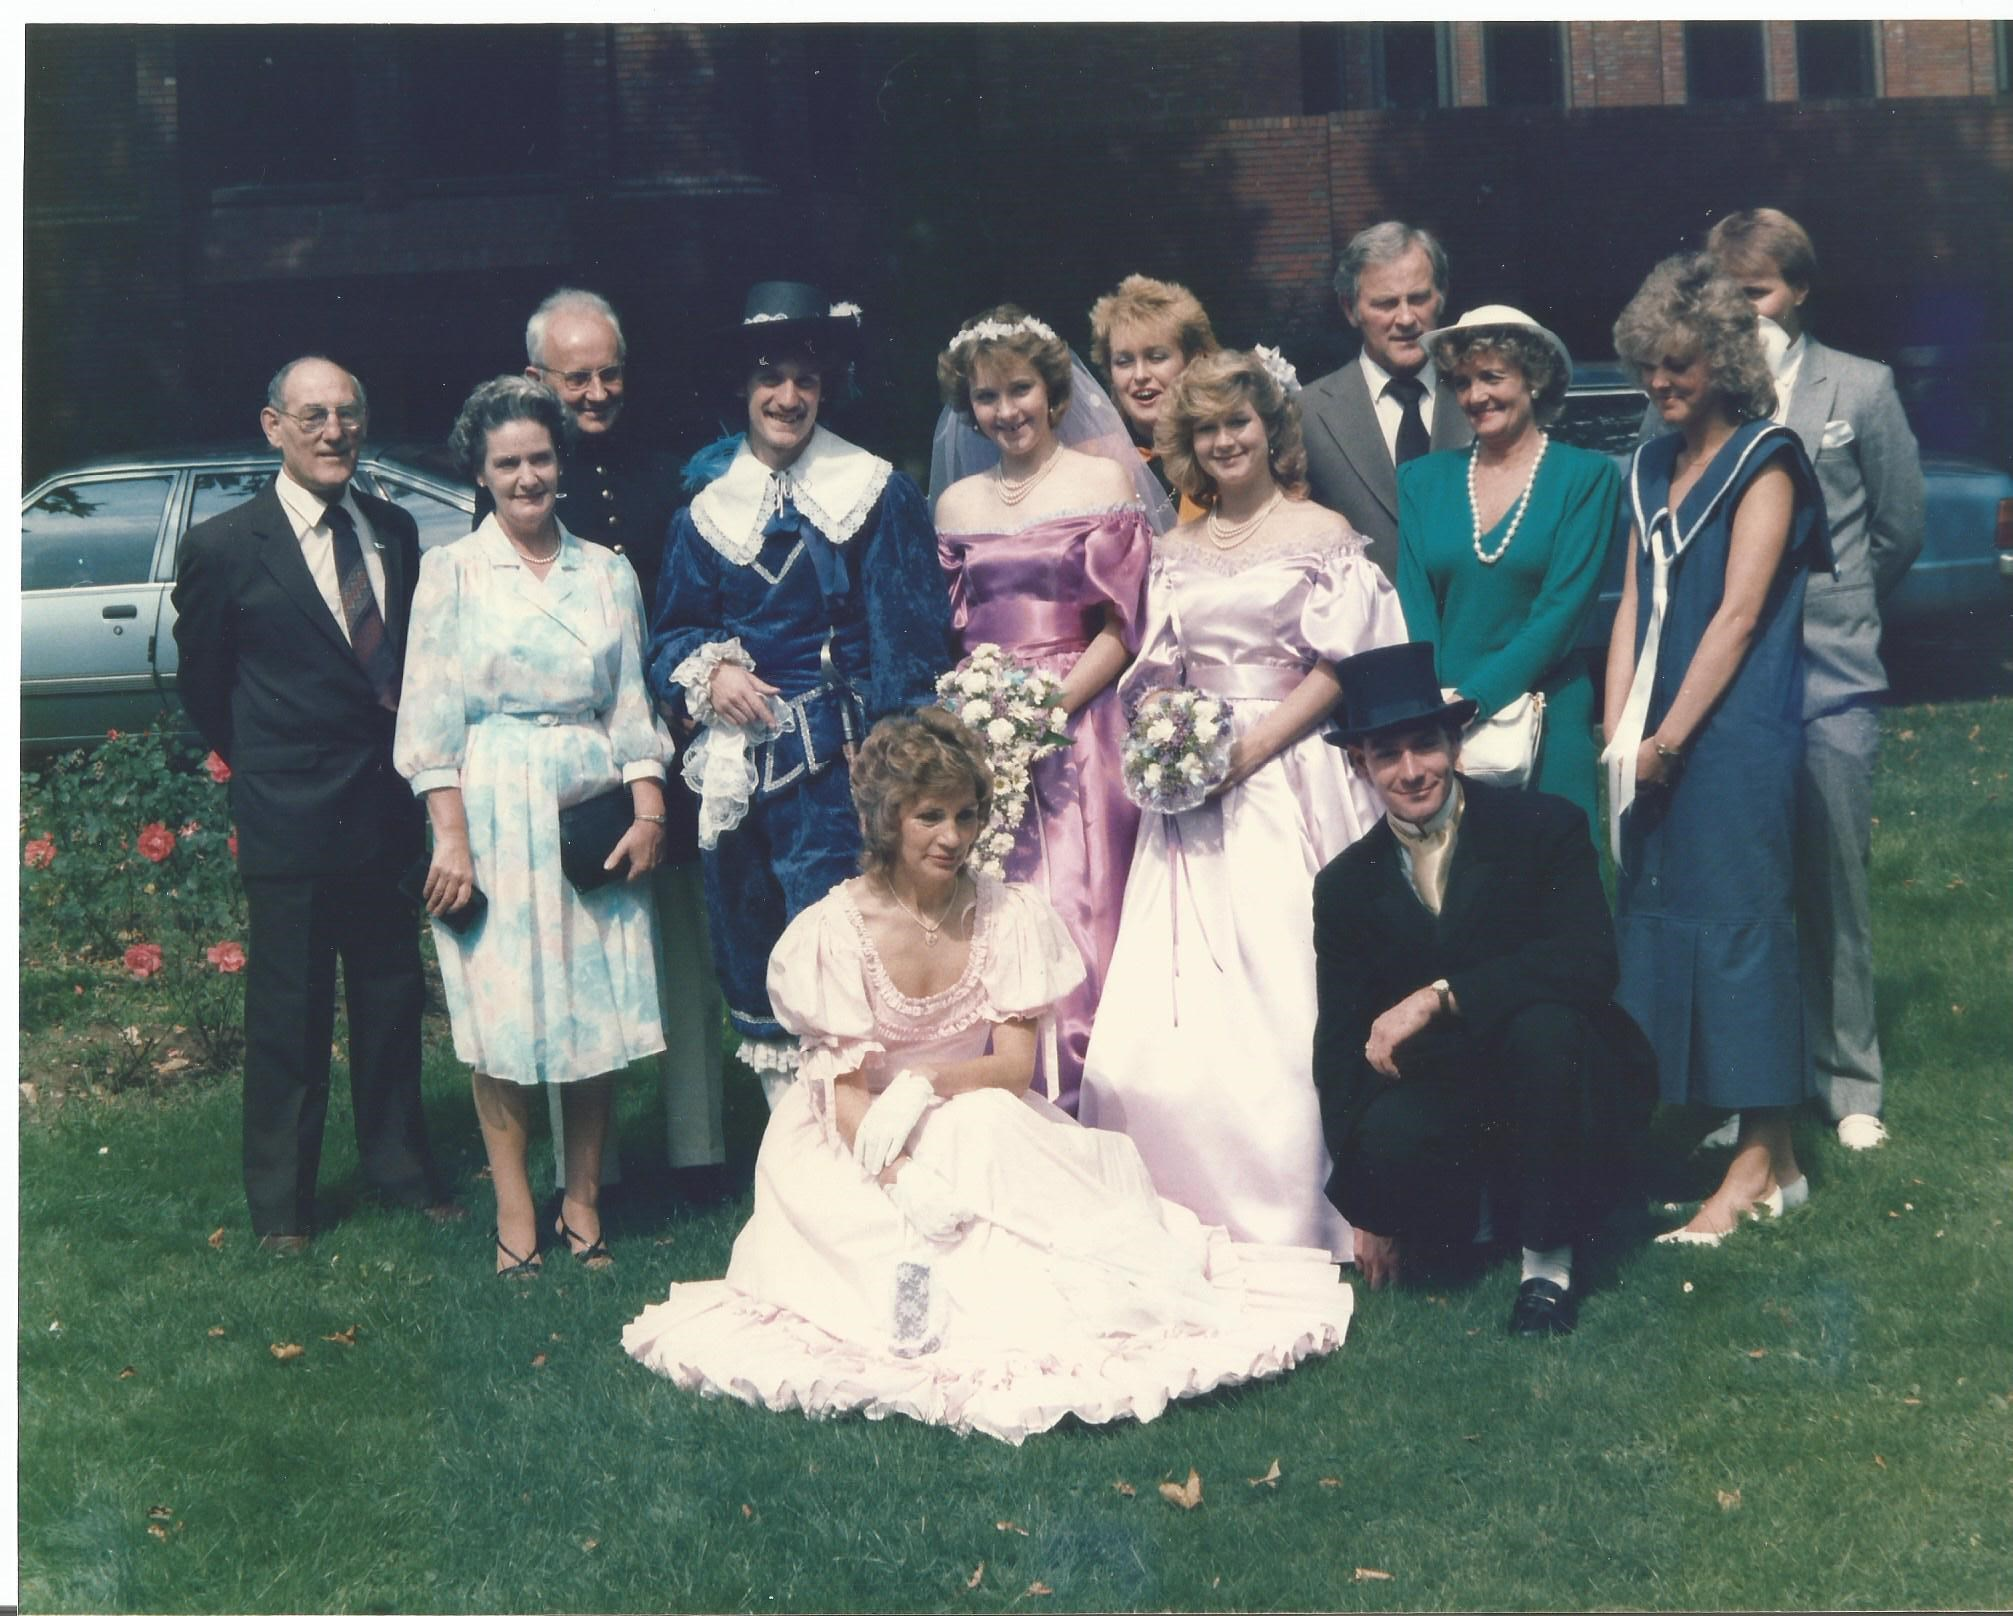 At our wedding 1986